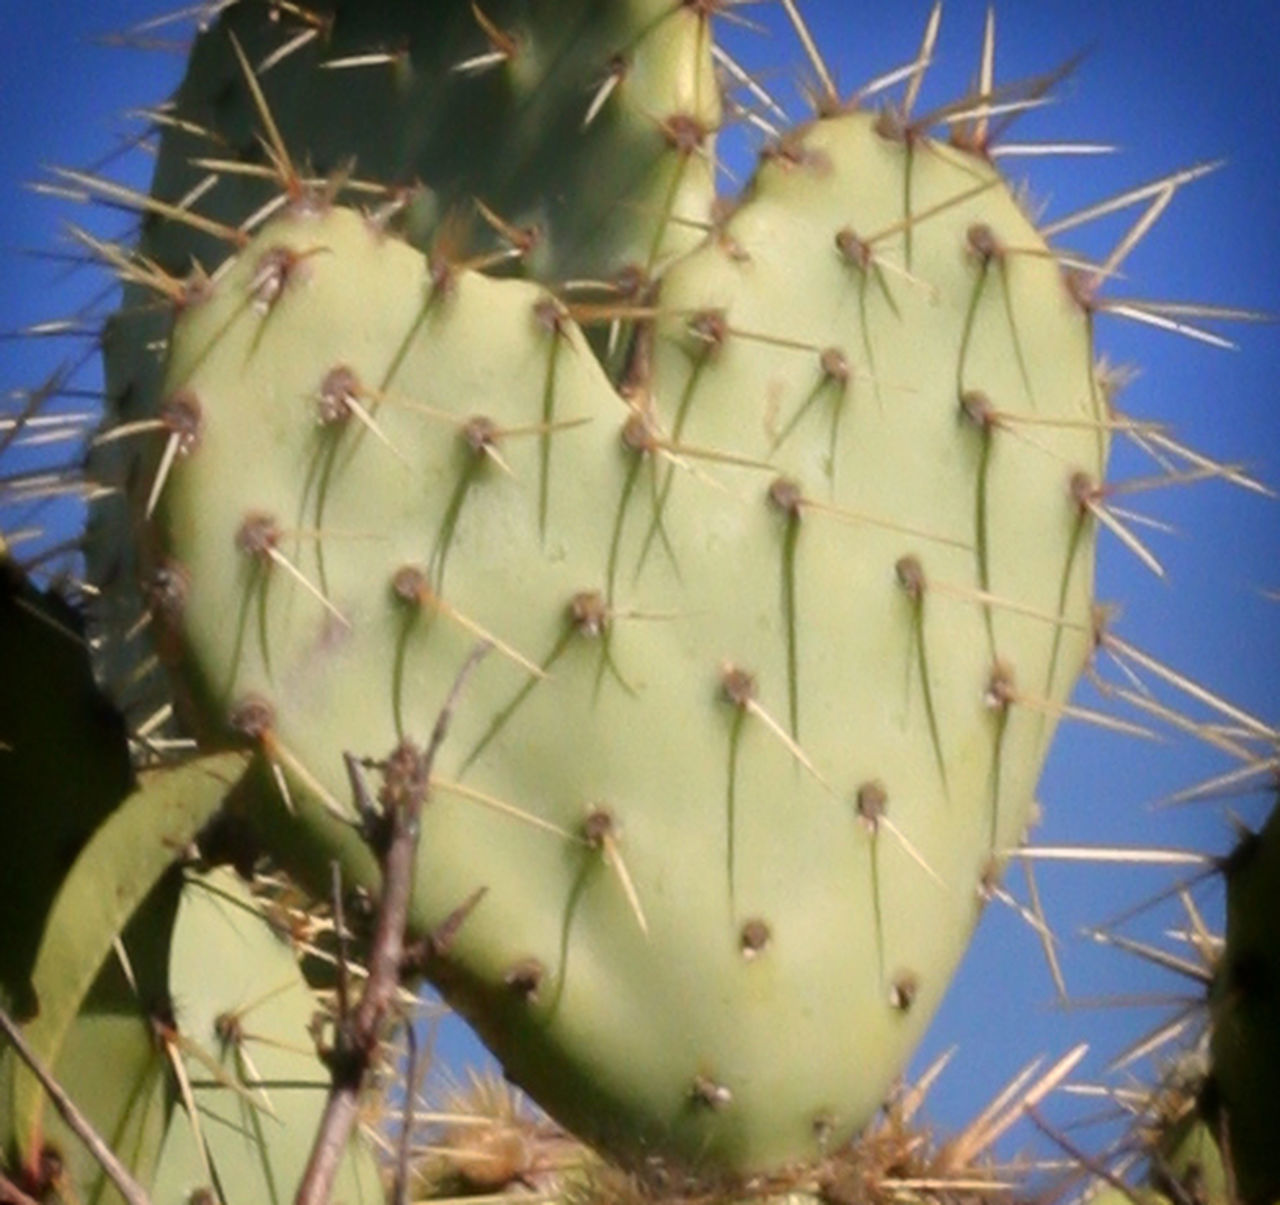 Arid Climate Beauty In Nature Cactus Cactus Heart Close-up Danger Day Desert Flower Focus On Foreground Green Color Growth Heart Heart Shape Nature No People Outdoors Plant Prickly Pear Cactus RISK Saguaro Cactus Sky Spiked Thorn Uncultivated